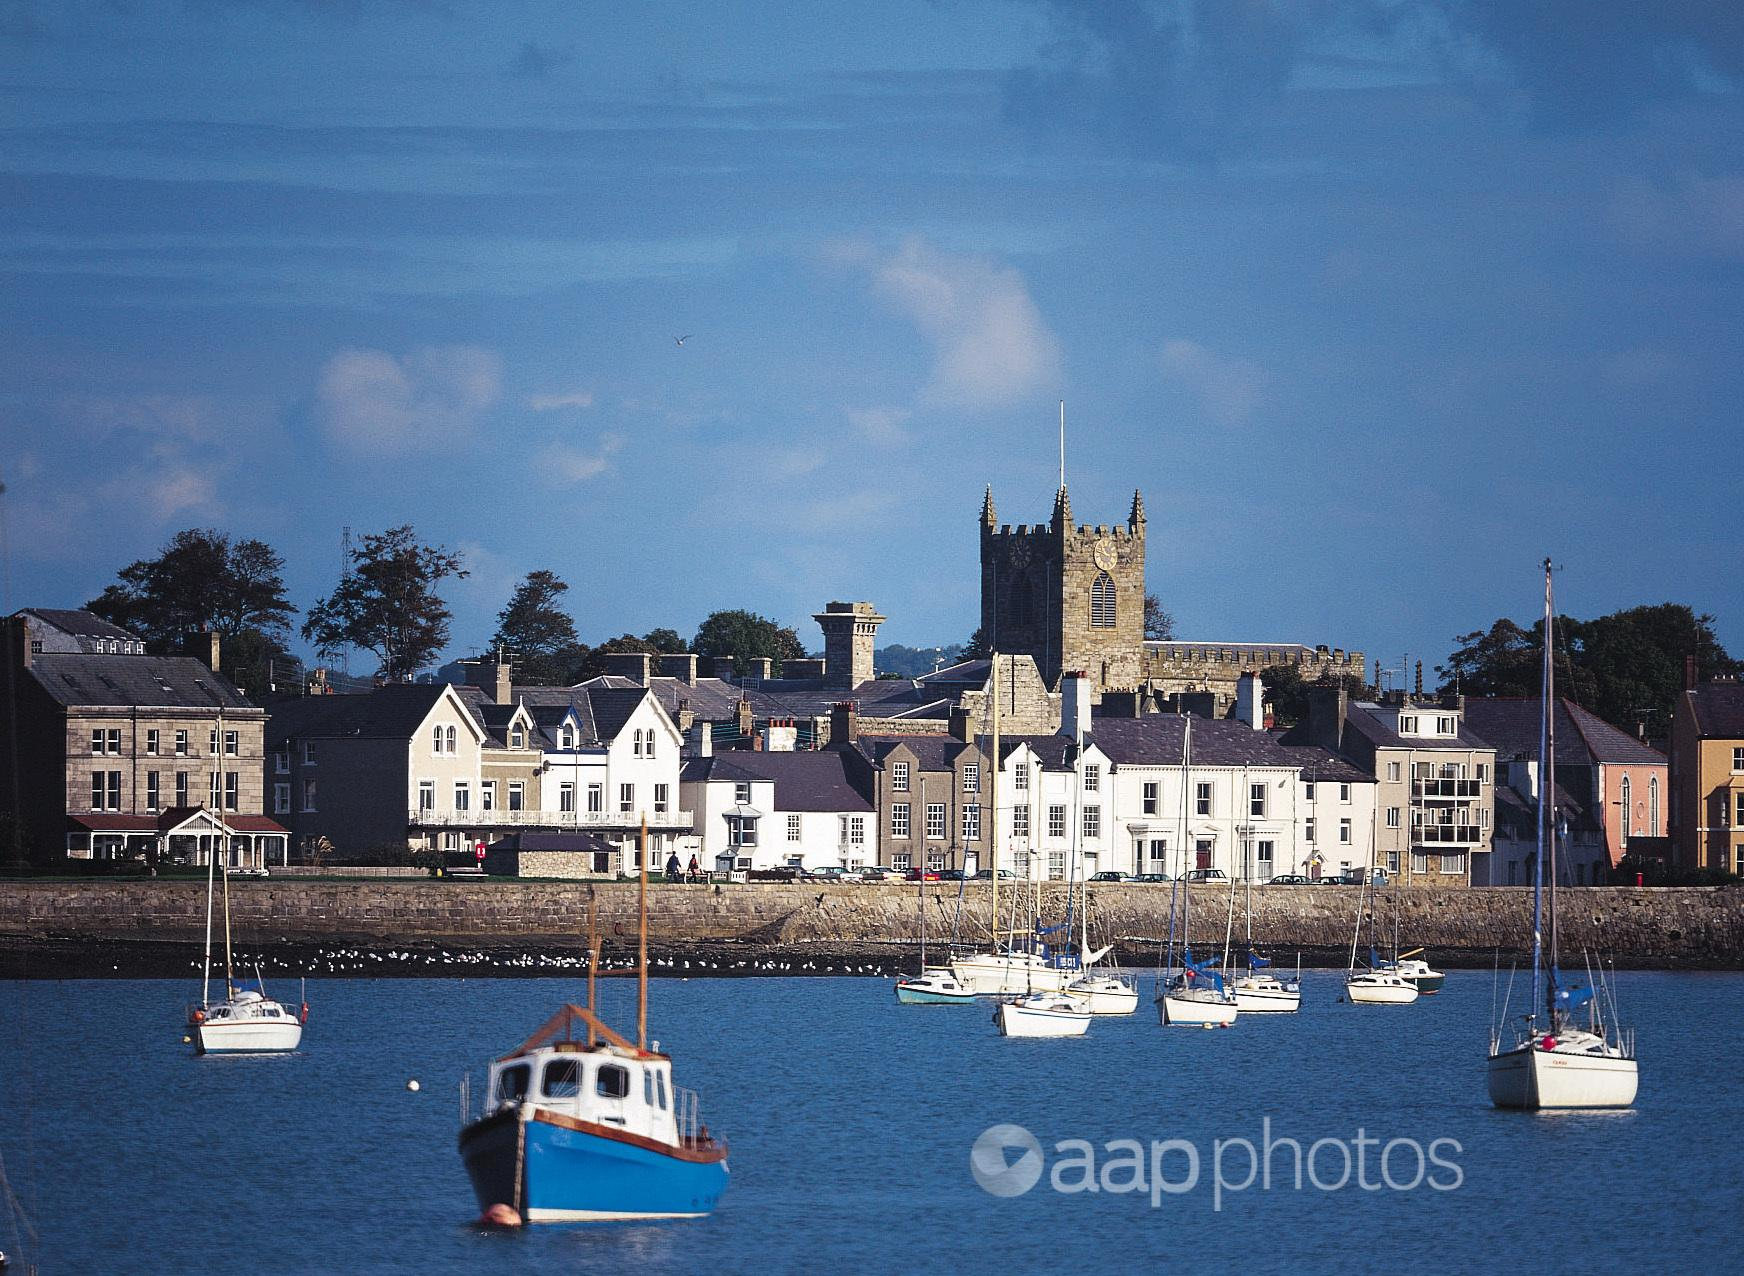 The waterfront of Beaumaris on the island of Anglesey.